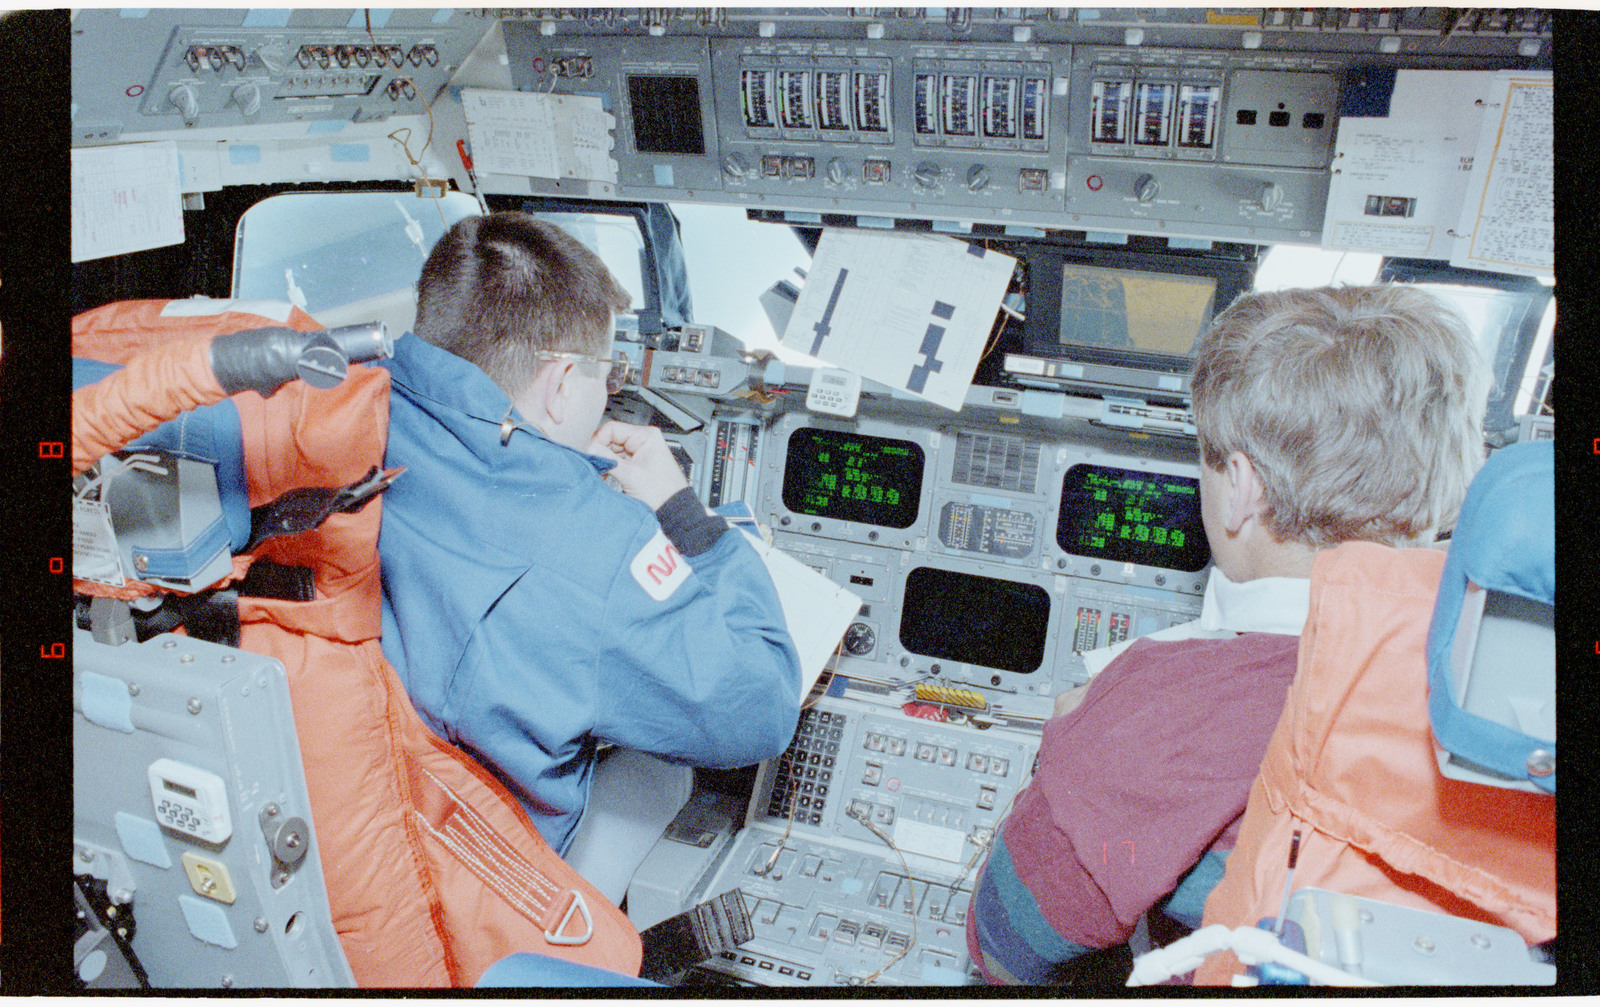 STS056-39-009 - STS-056 - Crewmembers in the fwd flight deck reviewing inflight procedures manual.